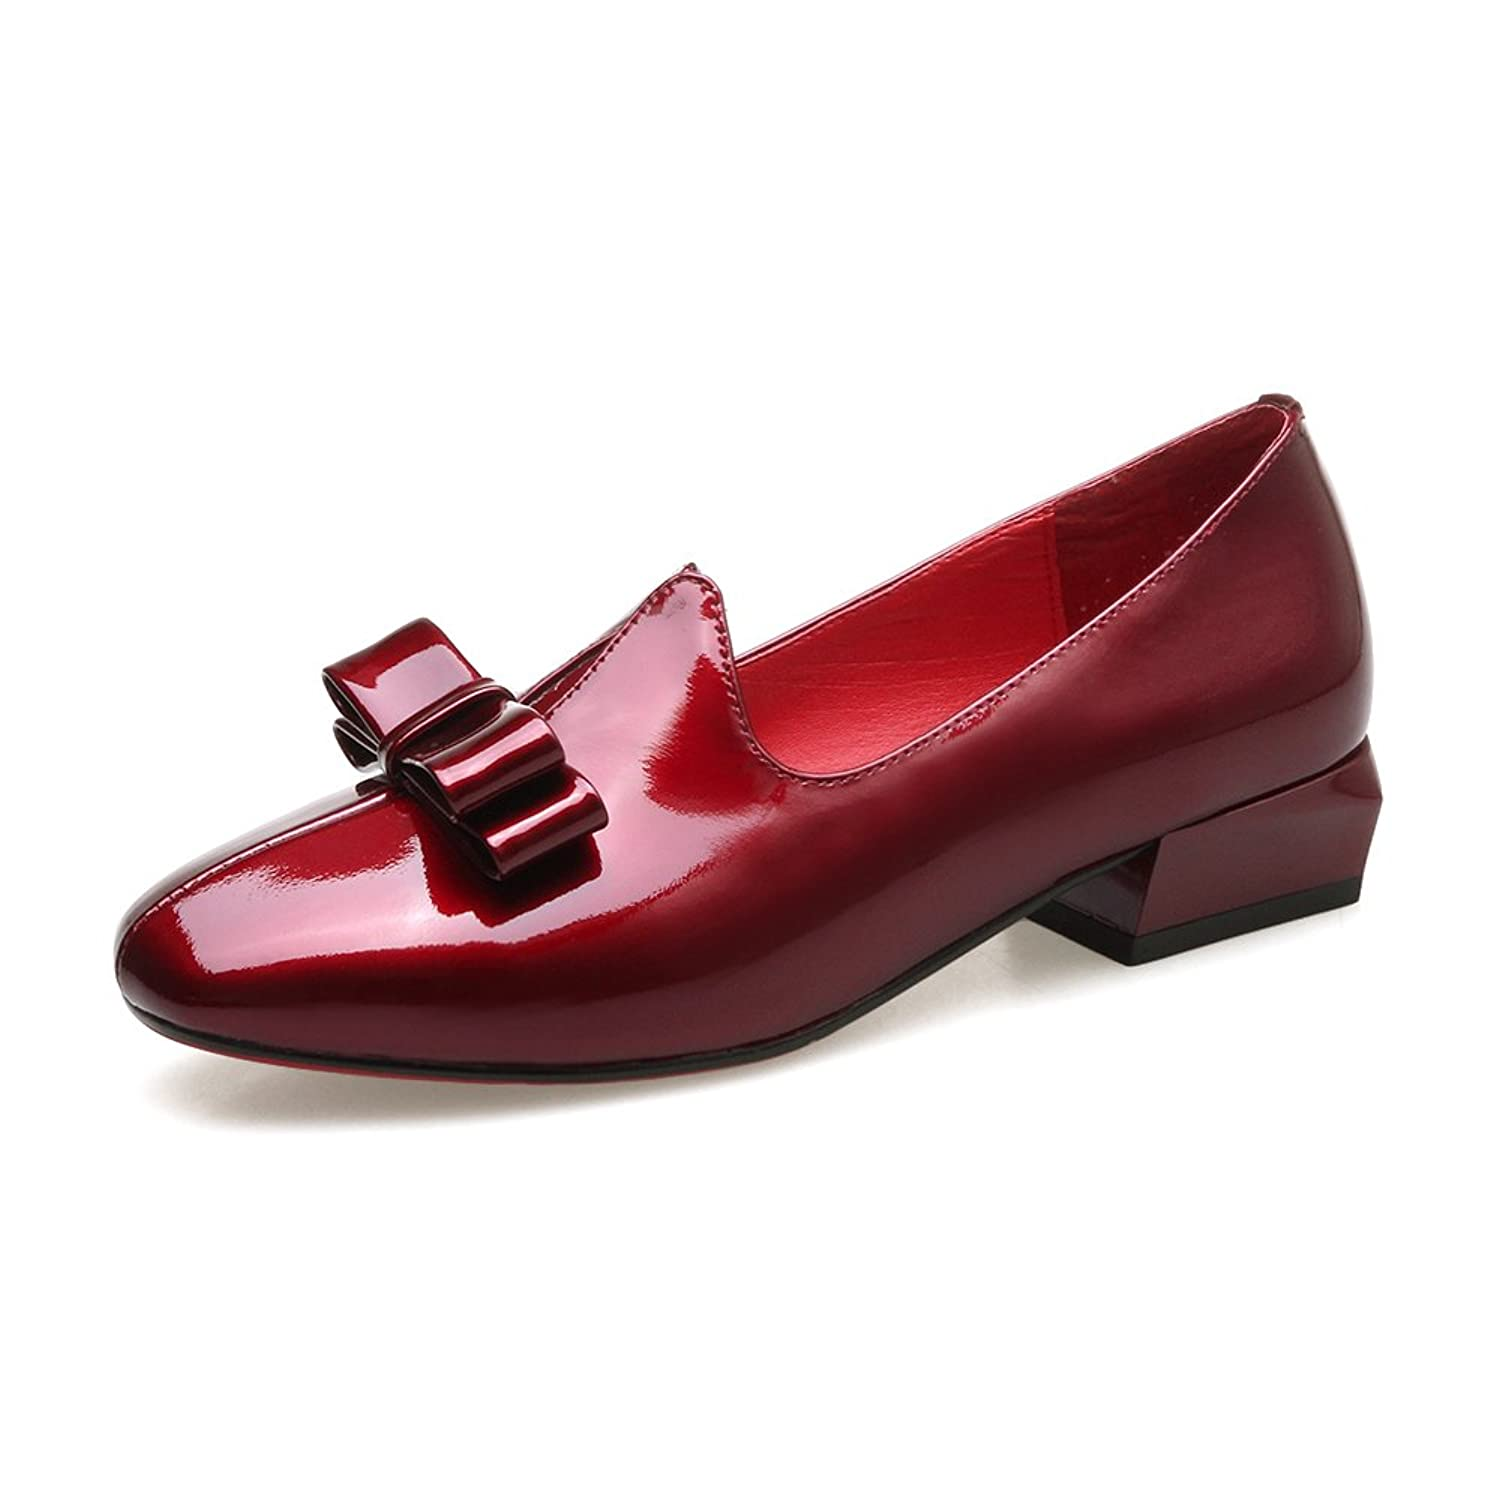 f6375617fd3f free shipping Nine Seven Patent Leather Women s Square Toe Chunky Heel  Bowknot Handmade Loafers Shoes